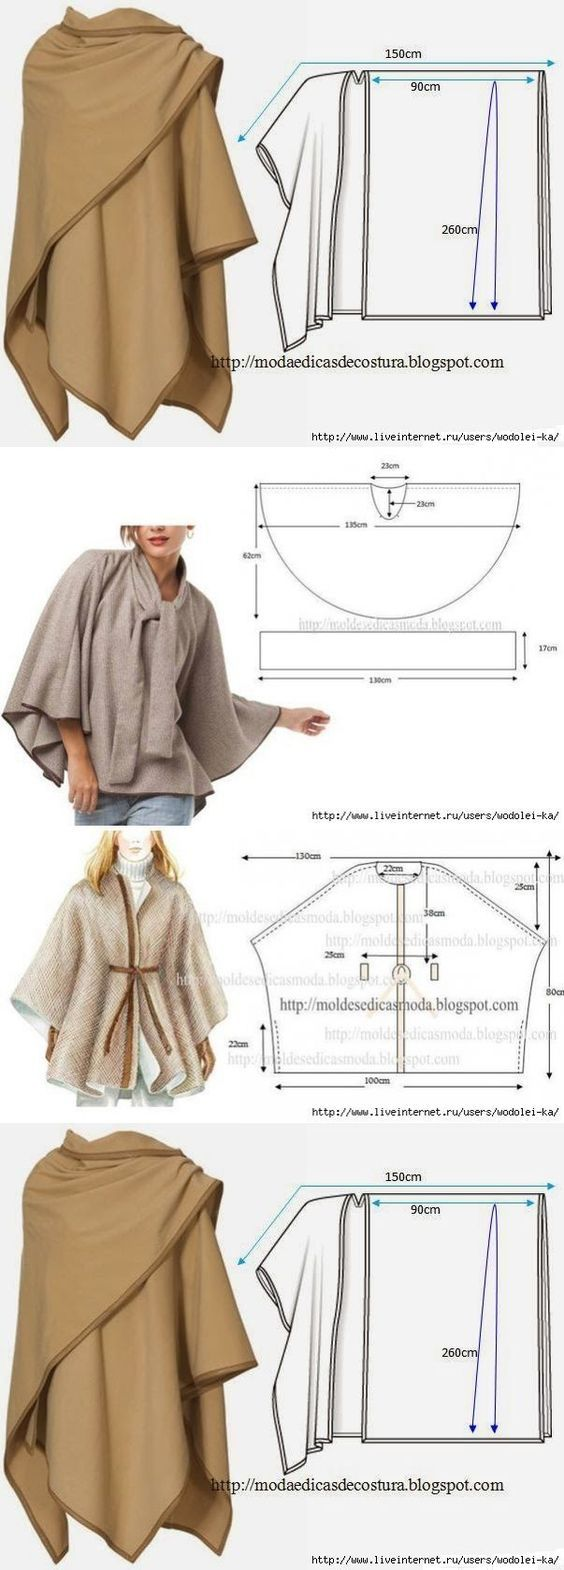 20 free patterns for cardigans and sweaters pdf sewing patterns 20 free patterns for cardigans and sweaters are you looking for a great jeuxipadfo Image collections